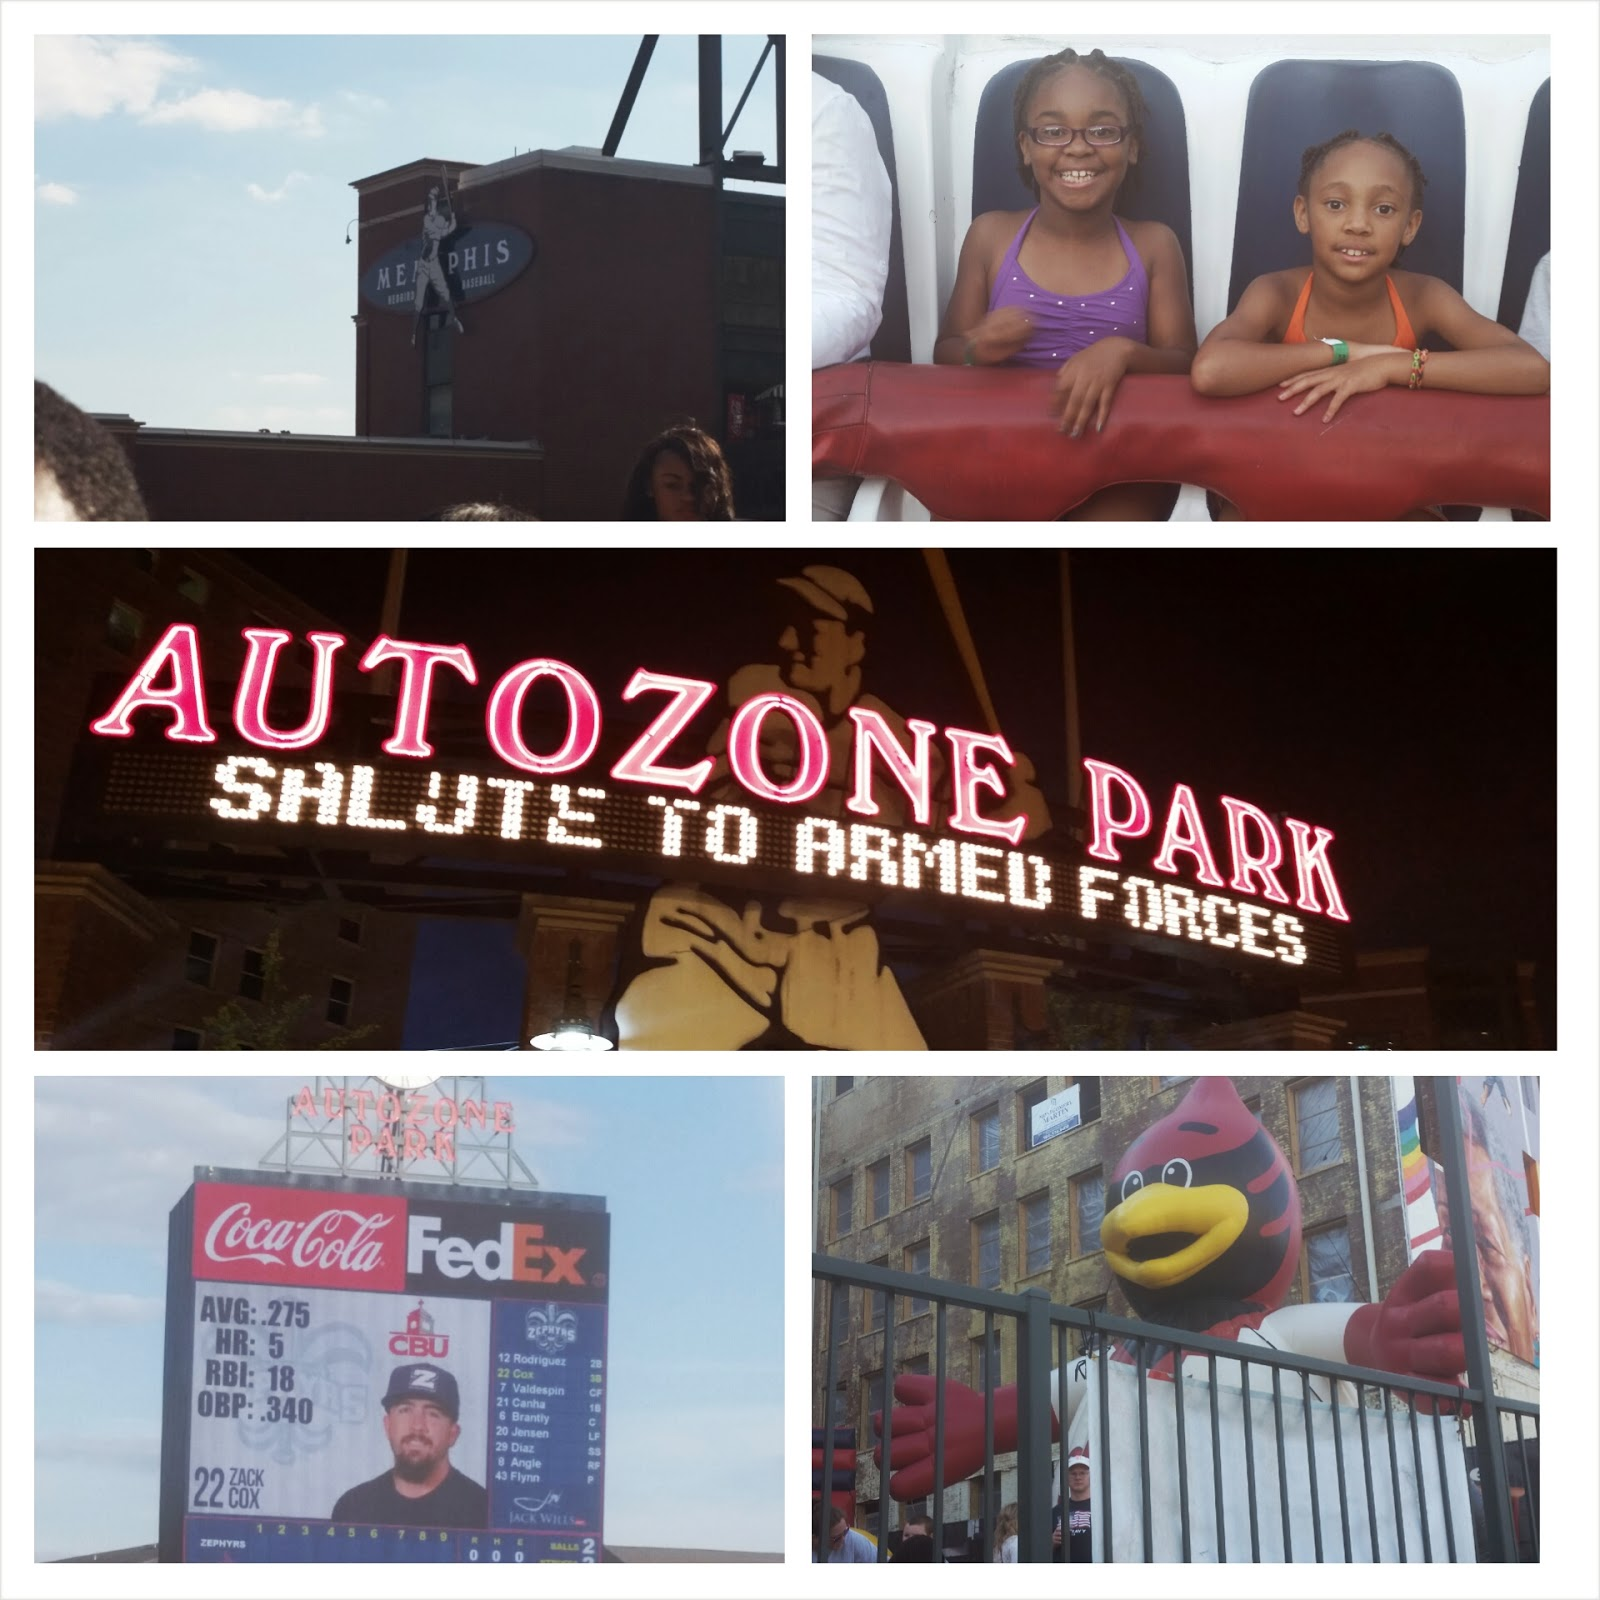 My Epic Family Road Trip Vacation! #RoadTrip #AutoZonePark via ProductReviewMom.com